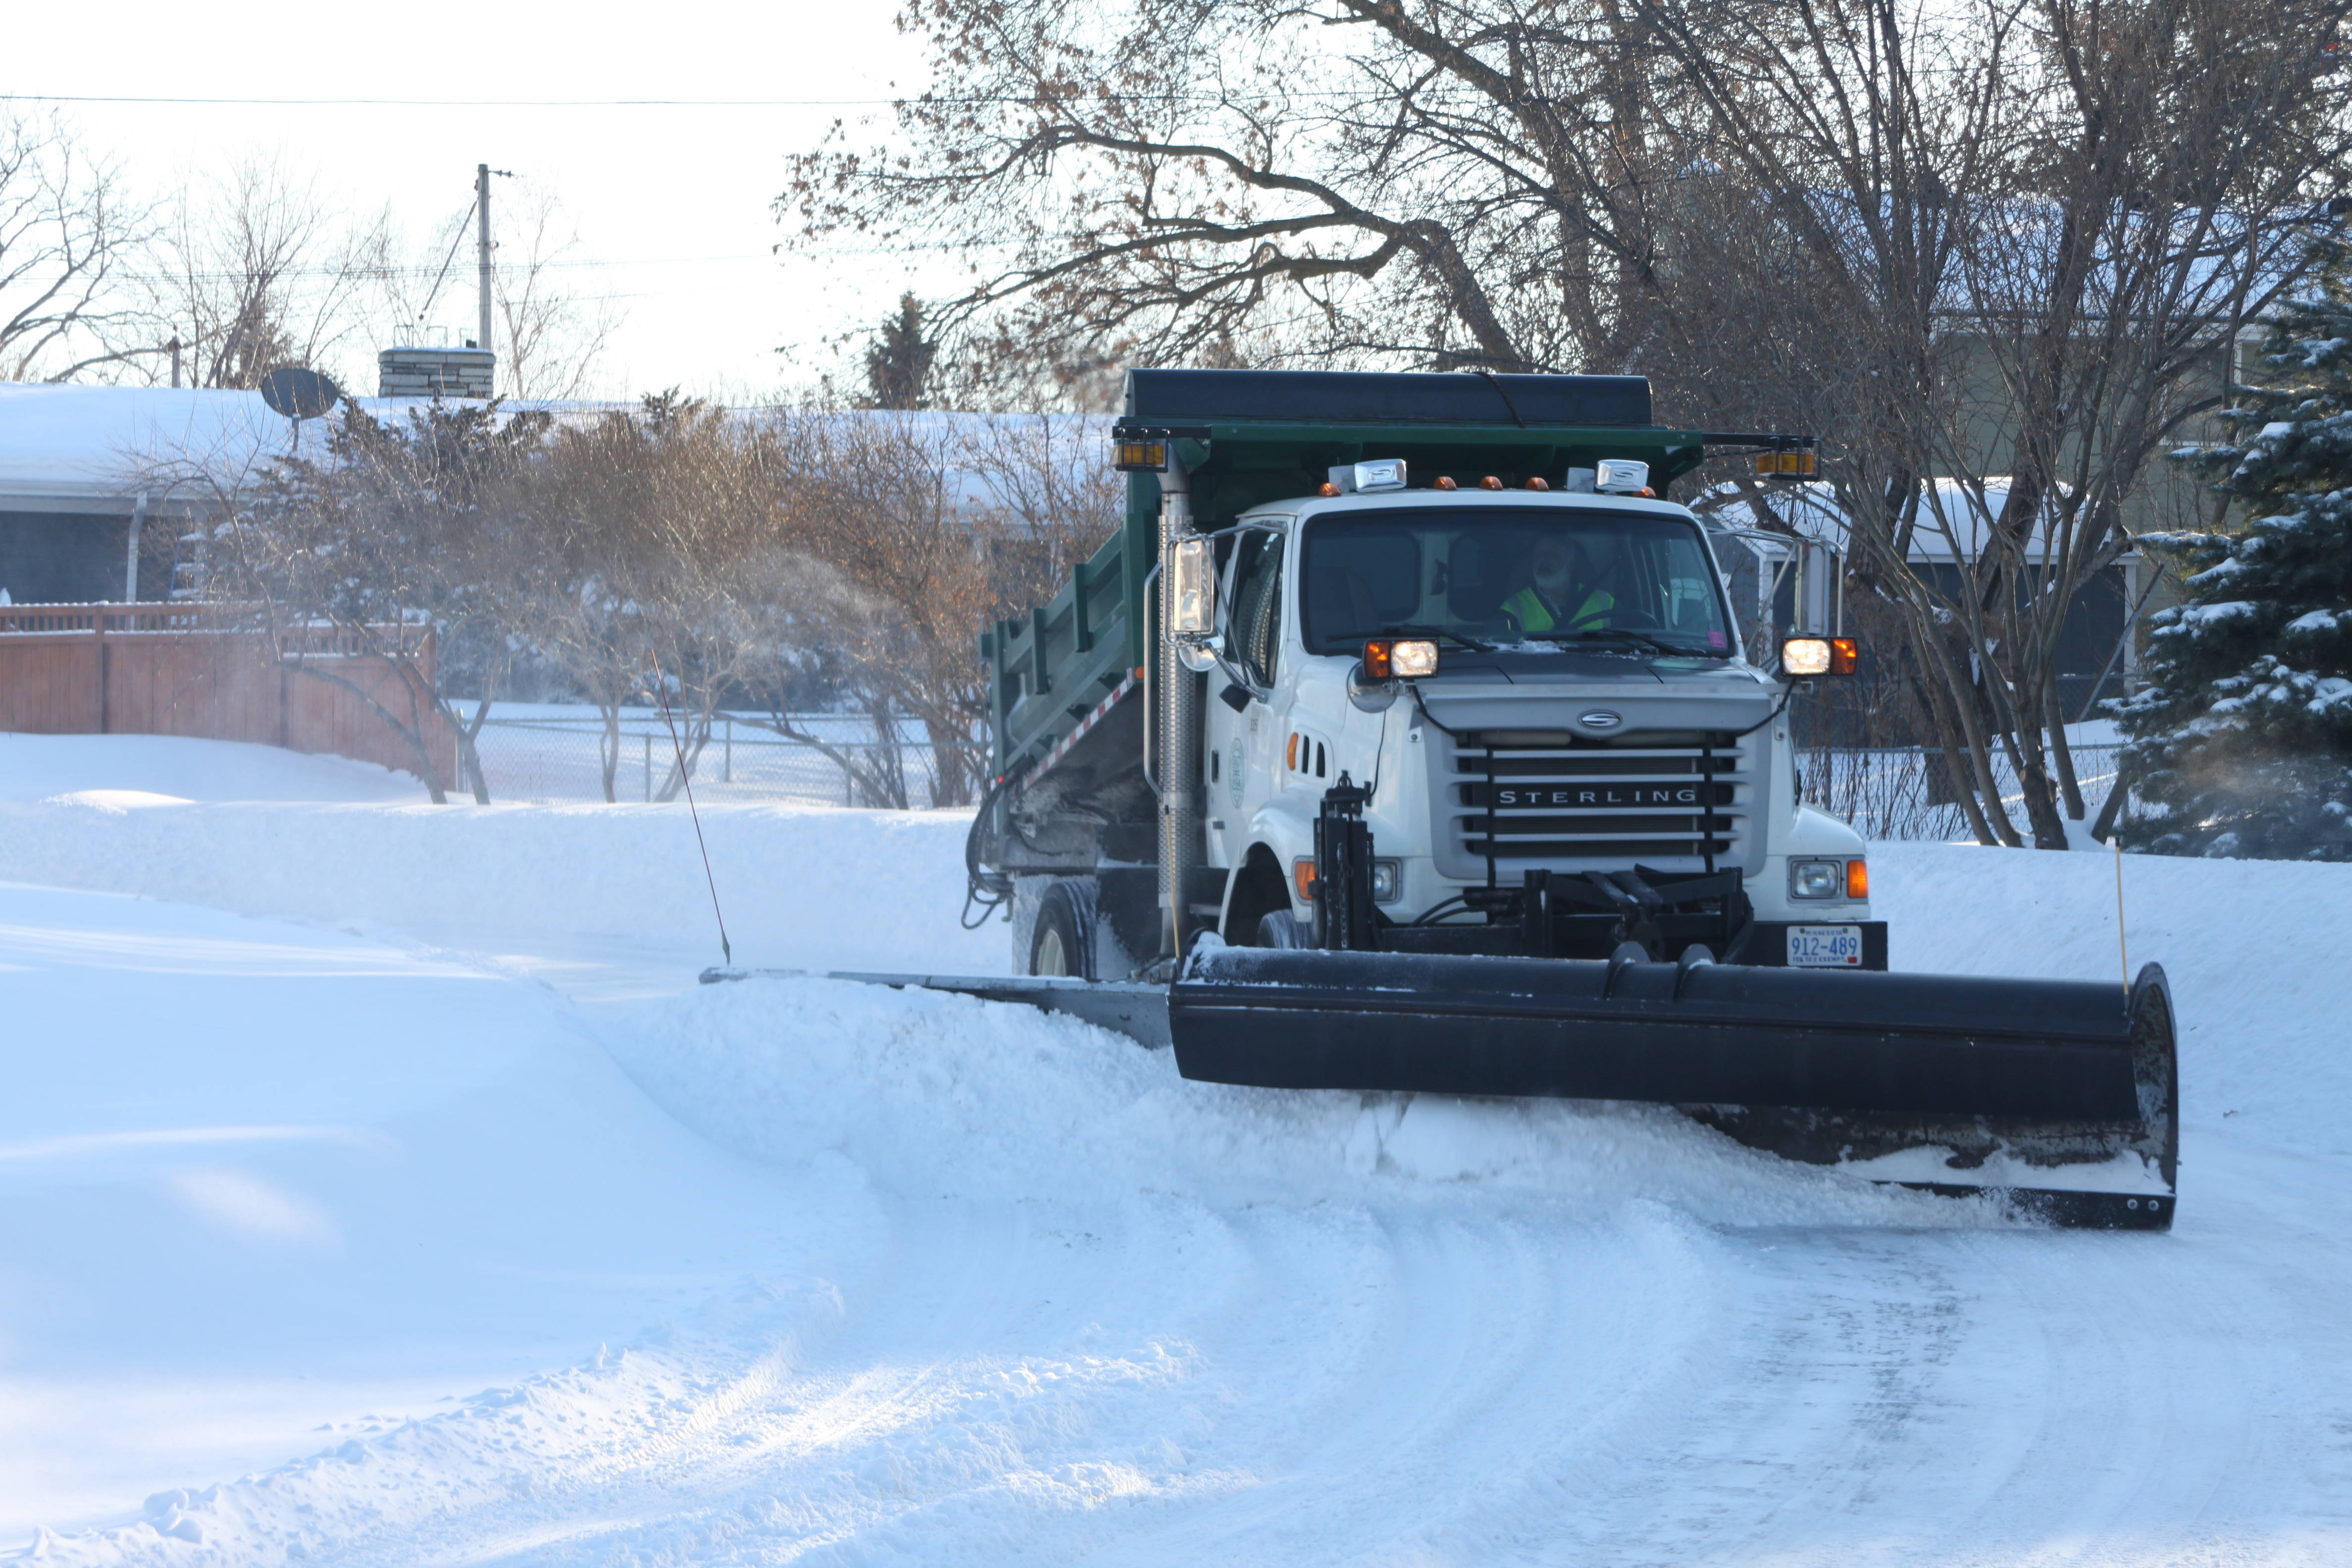 e552e403047398f75e20_Urban_Winter_Service_Vehicle_with_Snowplow_and_Wing_1.JPG